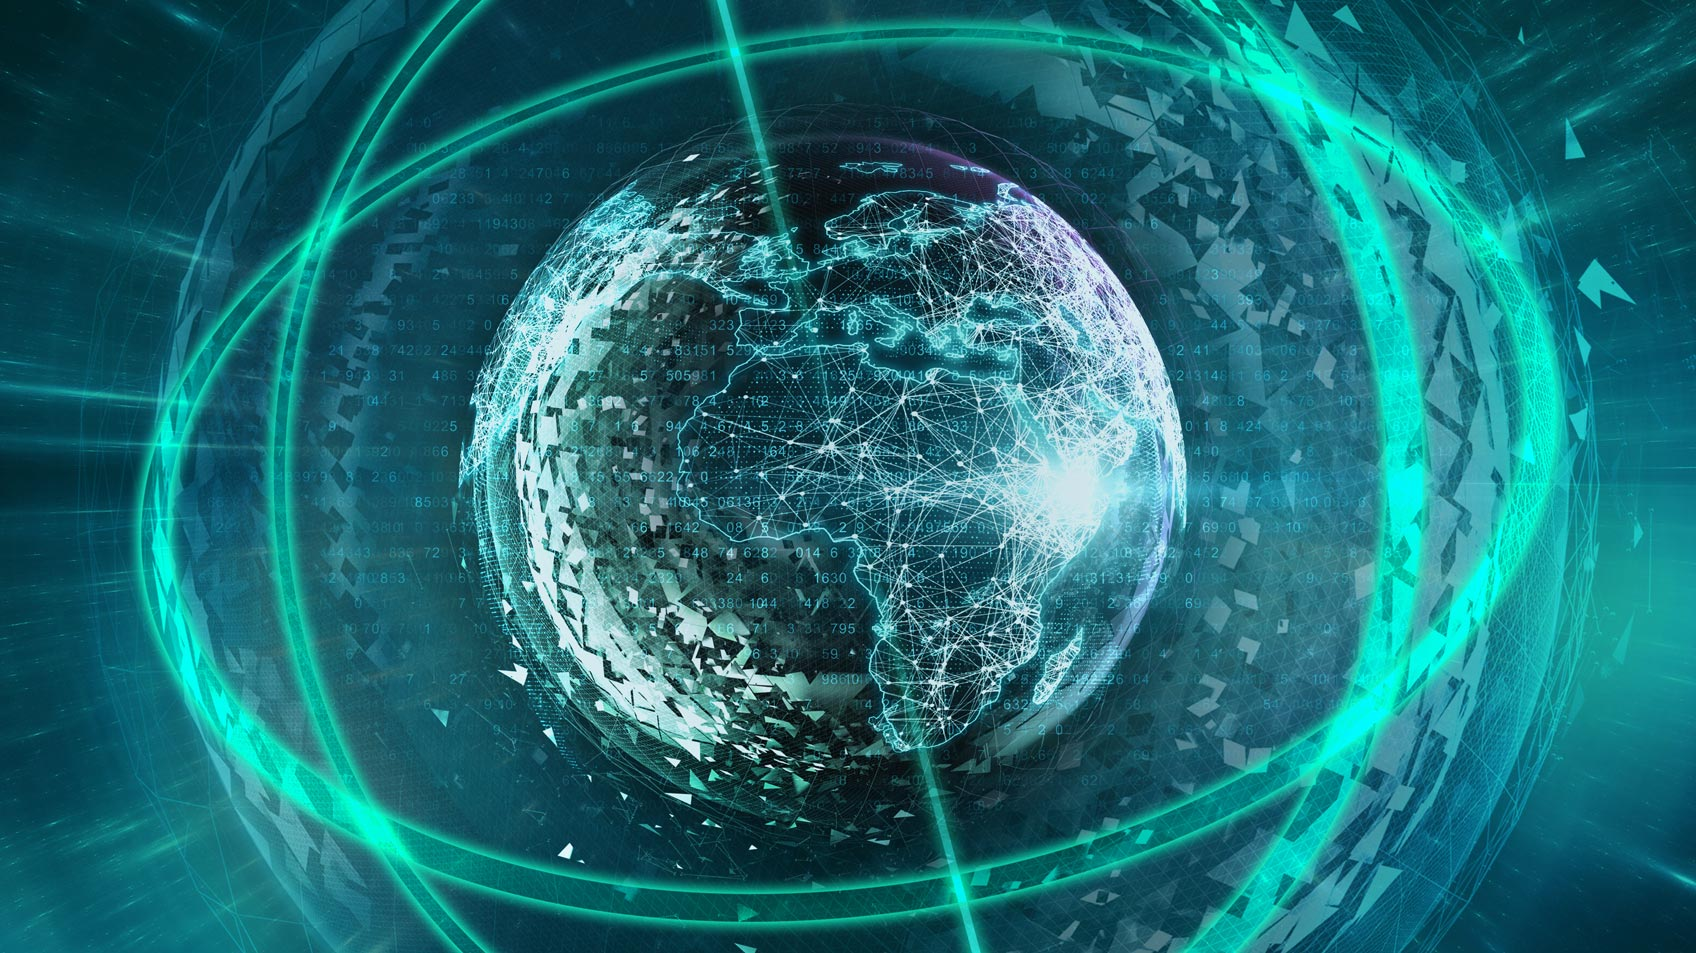 Scientists Building Highly Accurate Digital Twin of Our Planet